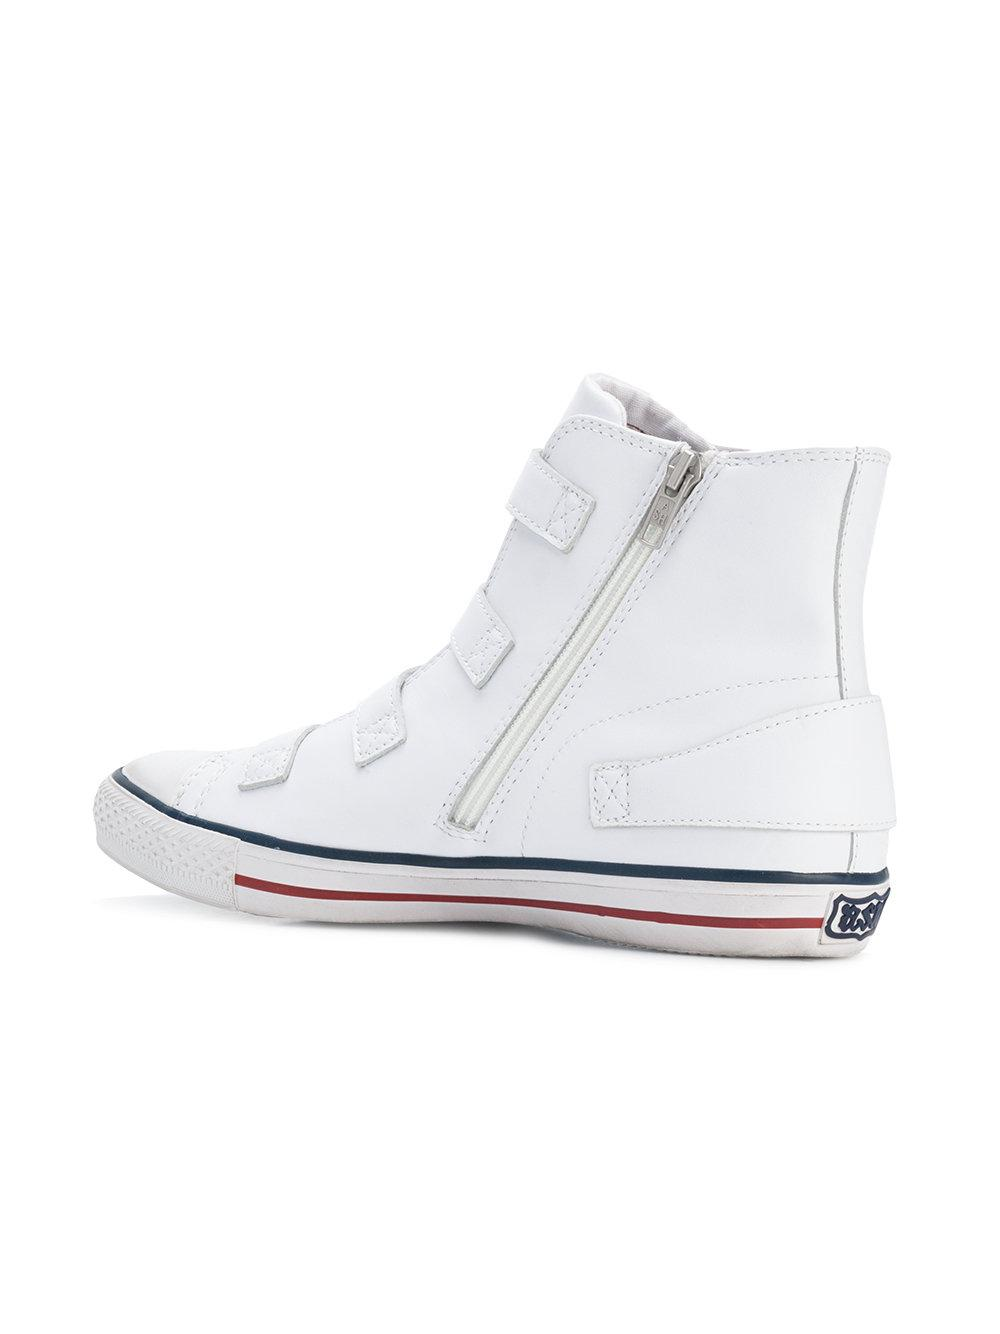 Ash Cotton Vincent Sneakers in White for Men